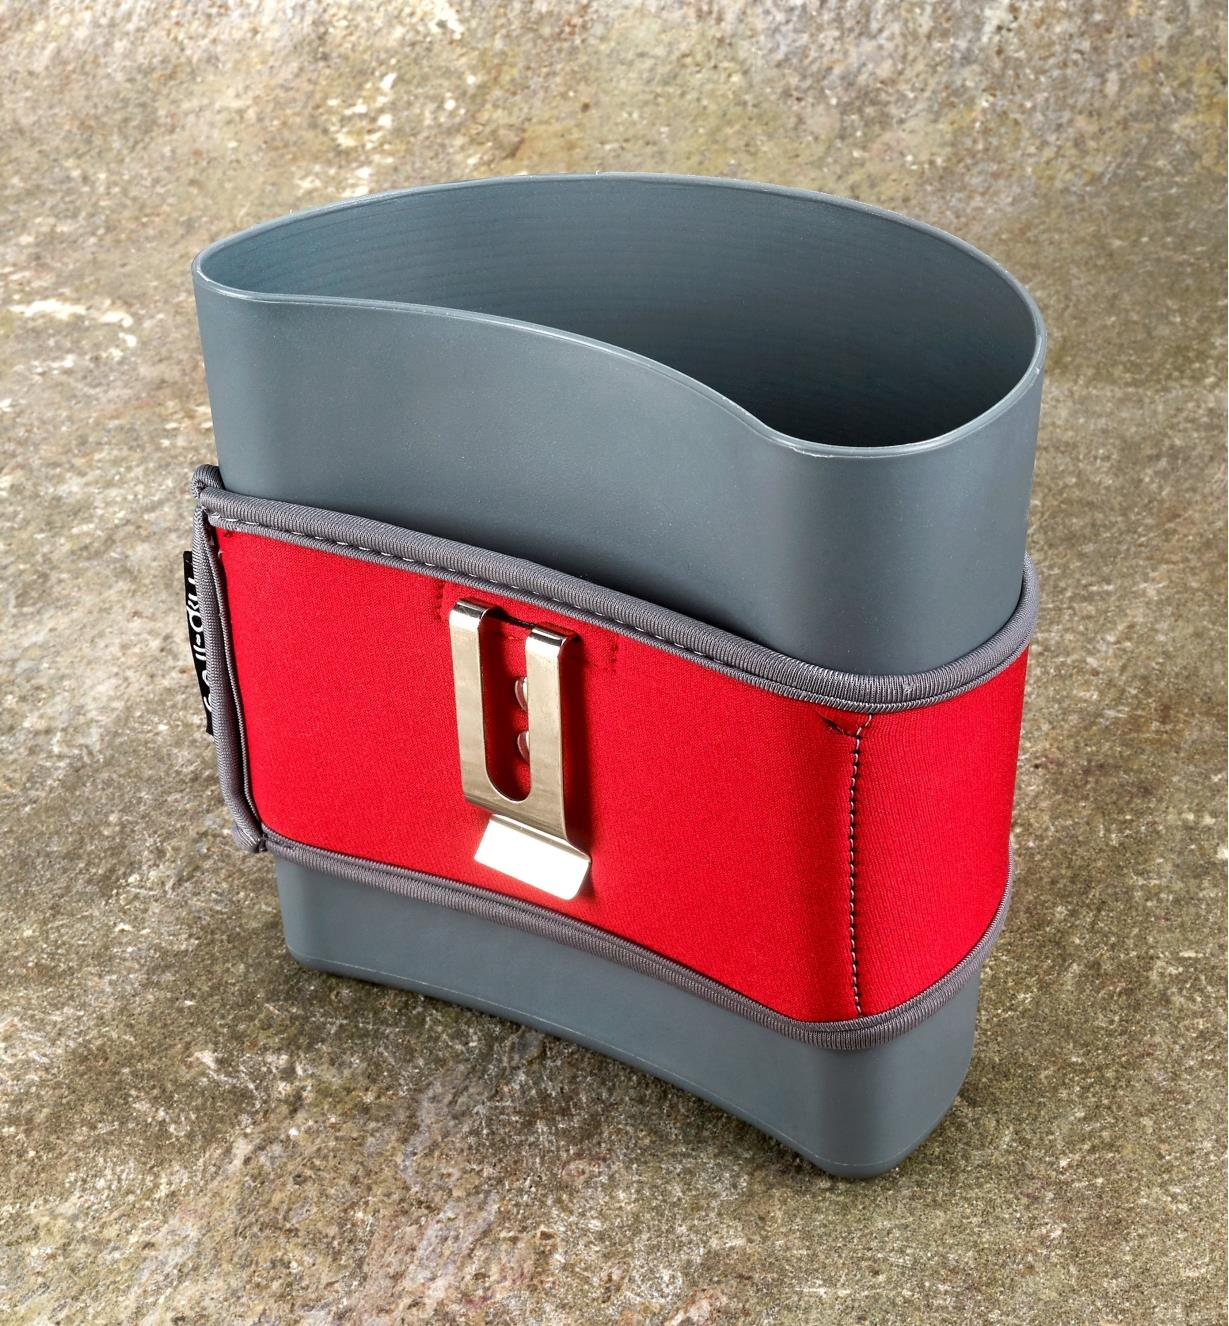 Back of hip-trug showing neoprene holster with clip